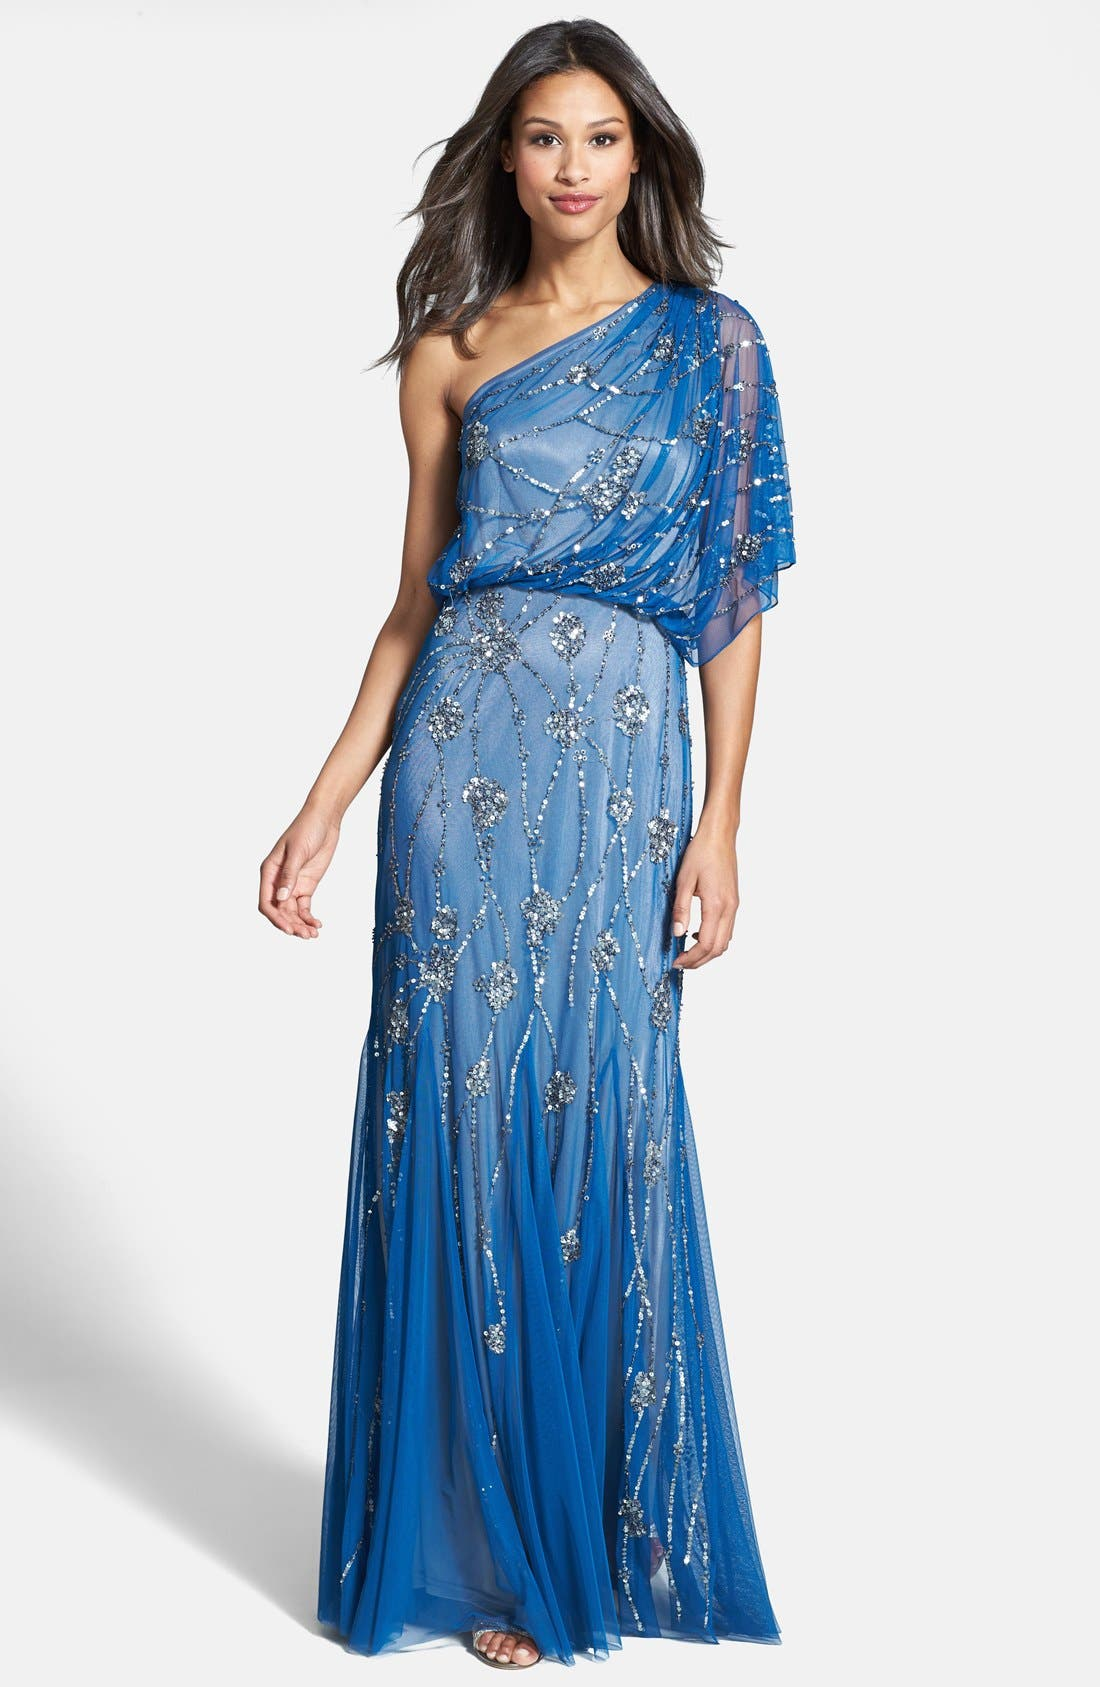 Main Image - Adrianna Papell Beaded One Shoulder Blouson Gown